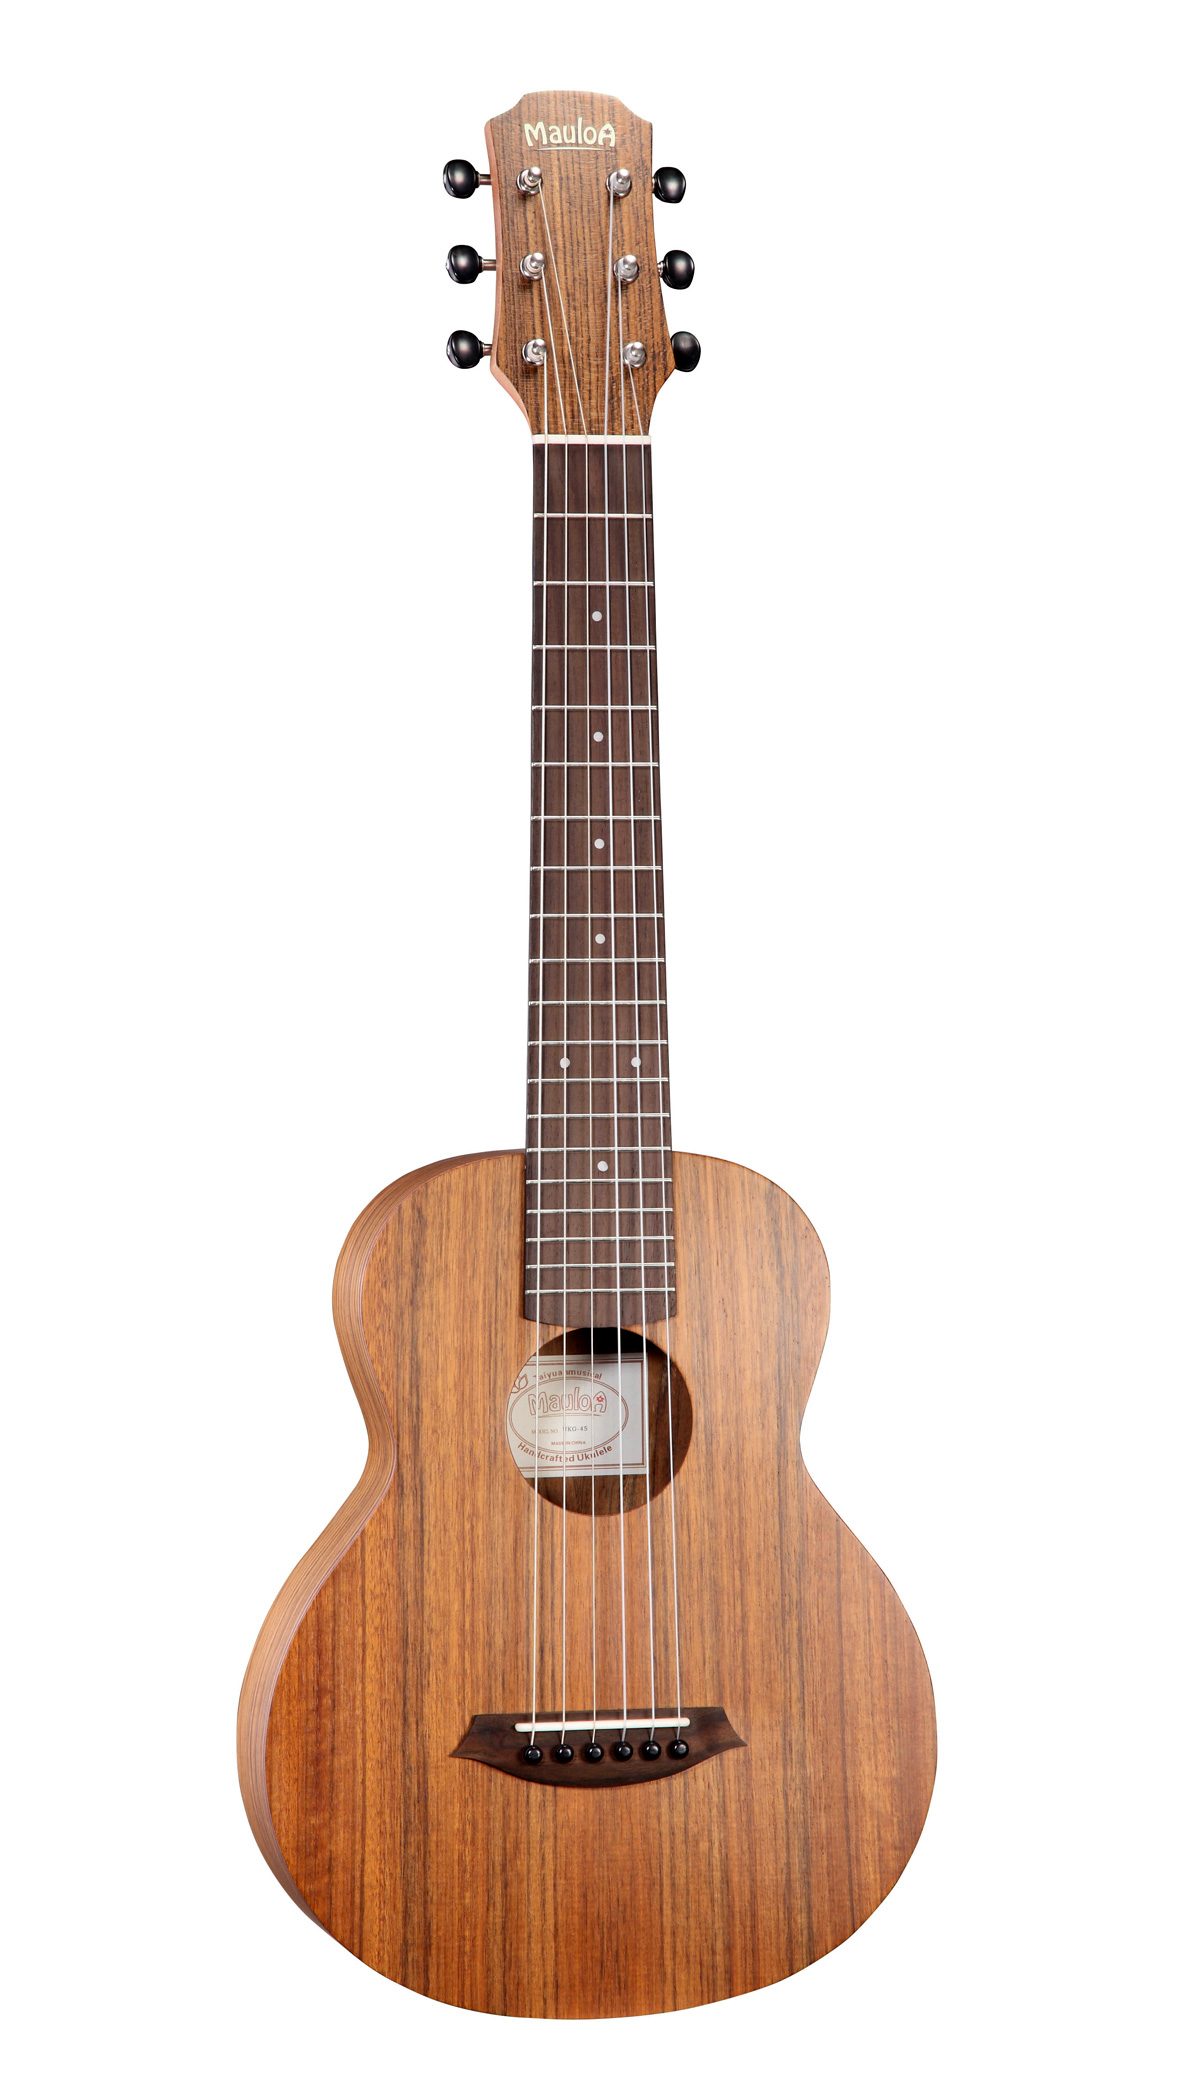 Walnut Plywood,Guitarlele